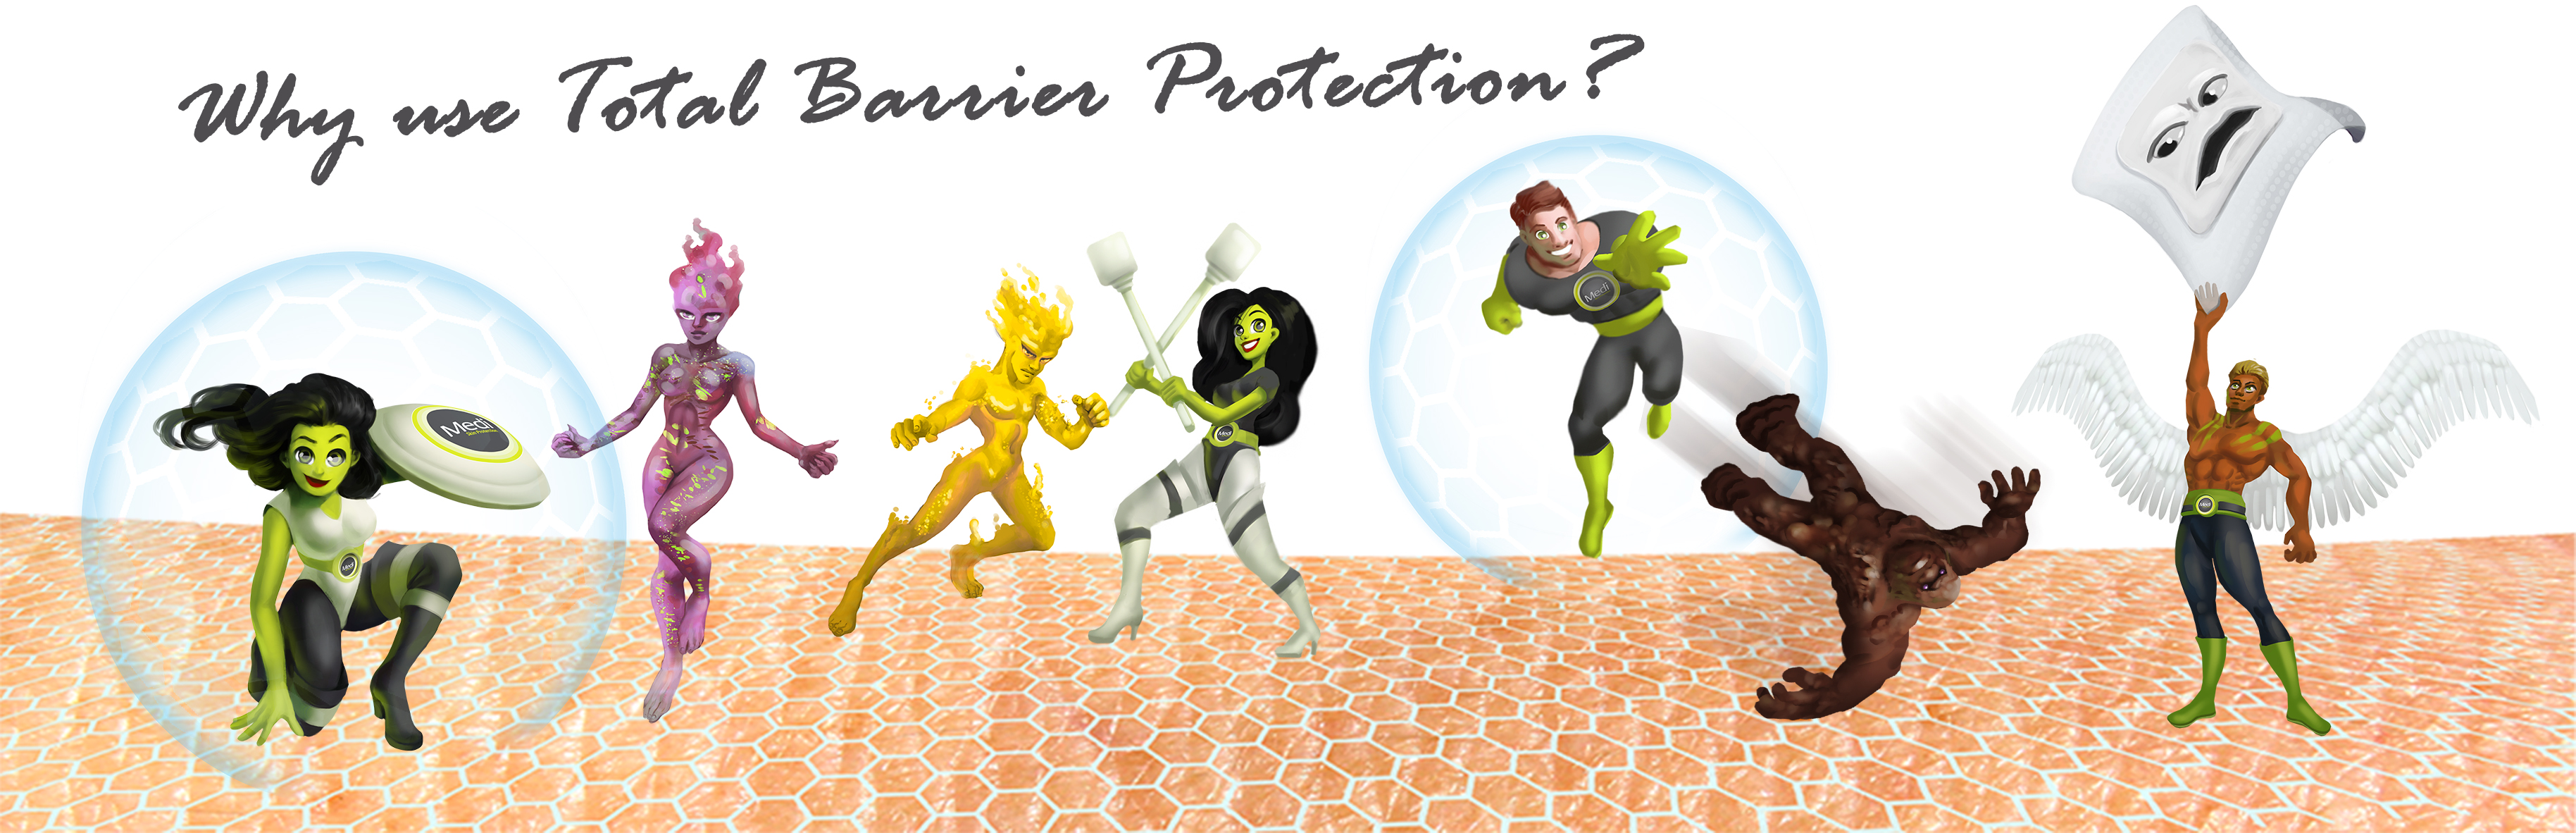 Skin Care | Total Barrier Protection